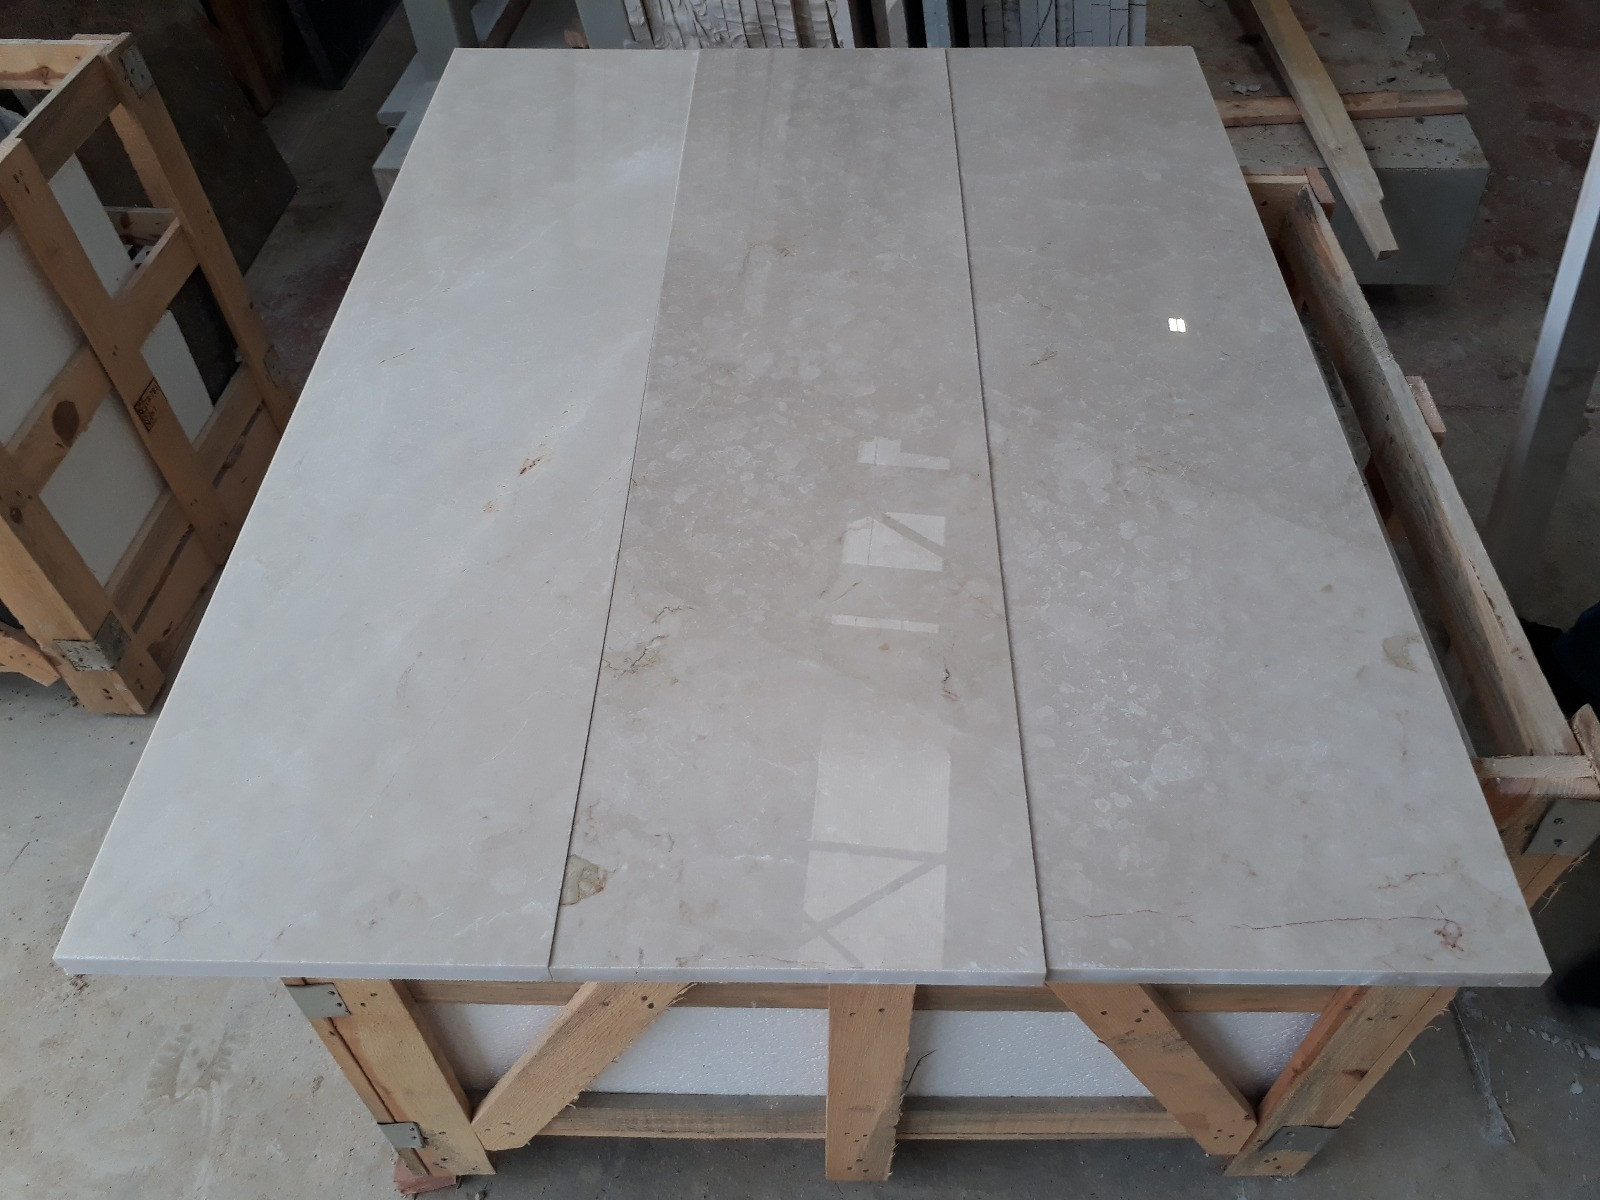 Elmali Beige_First Selection_300x1200x20 mm_Polished_Rejected__4_